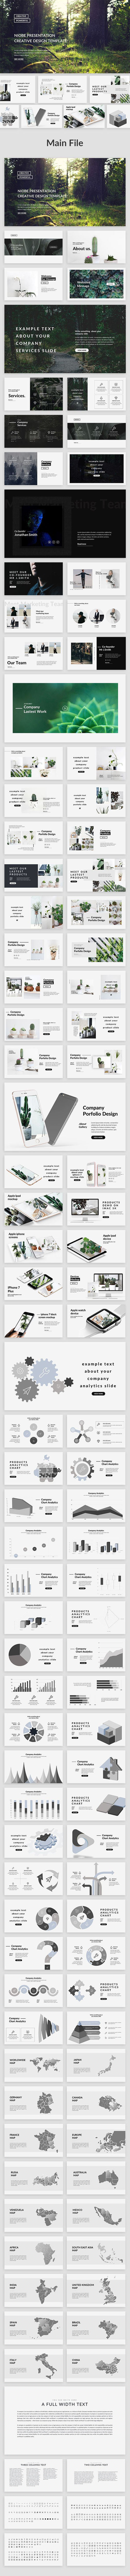 Niobe Creative  - 主题演讲KEY #business #professional•下载➝https://graphicriver.net/item/niobe-creative-keynote-template/19592214?ref=pxcr